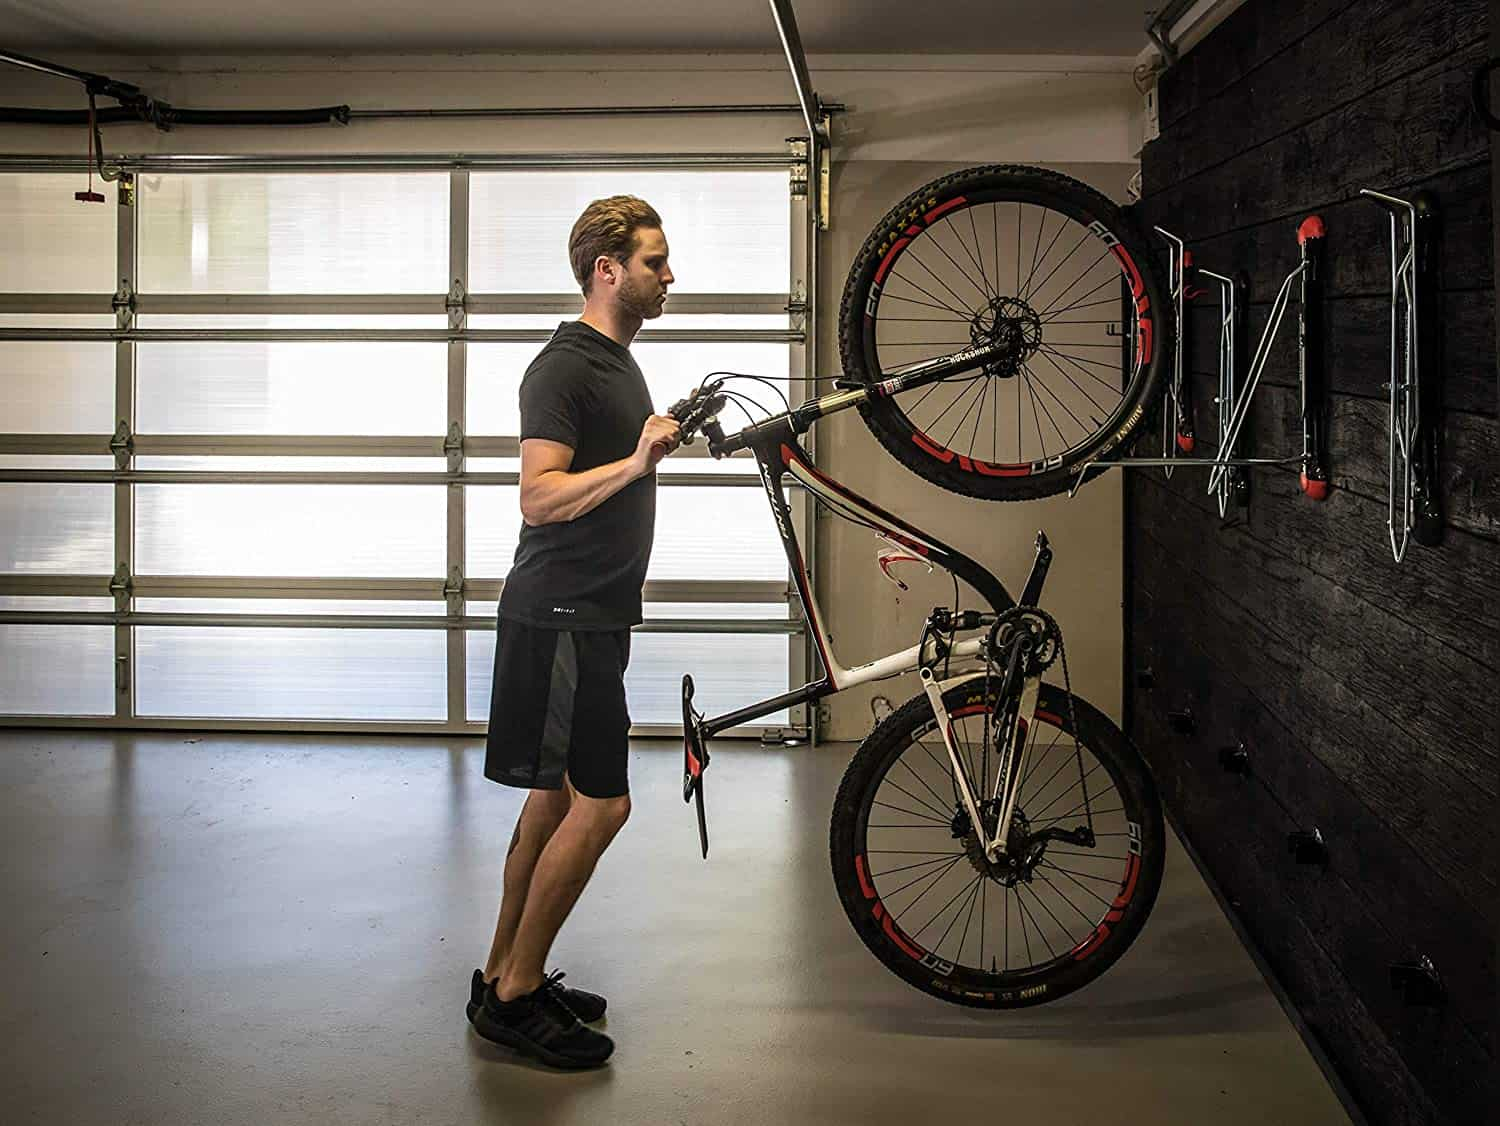 Steadyrack vertical bike storage